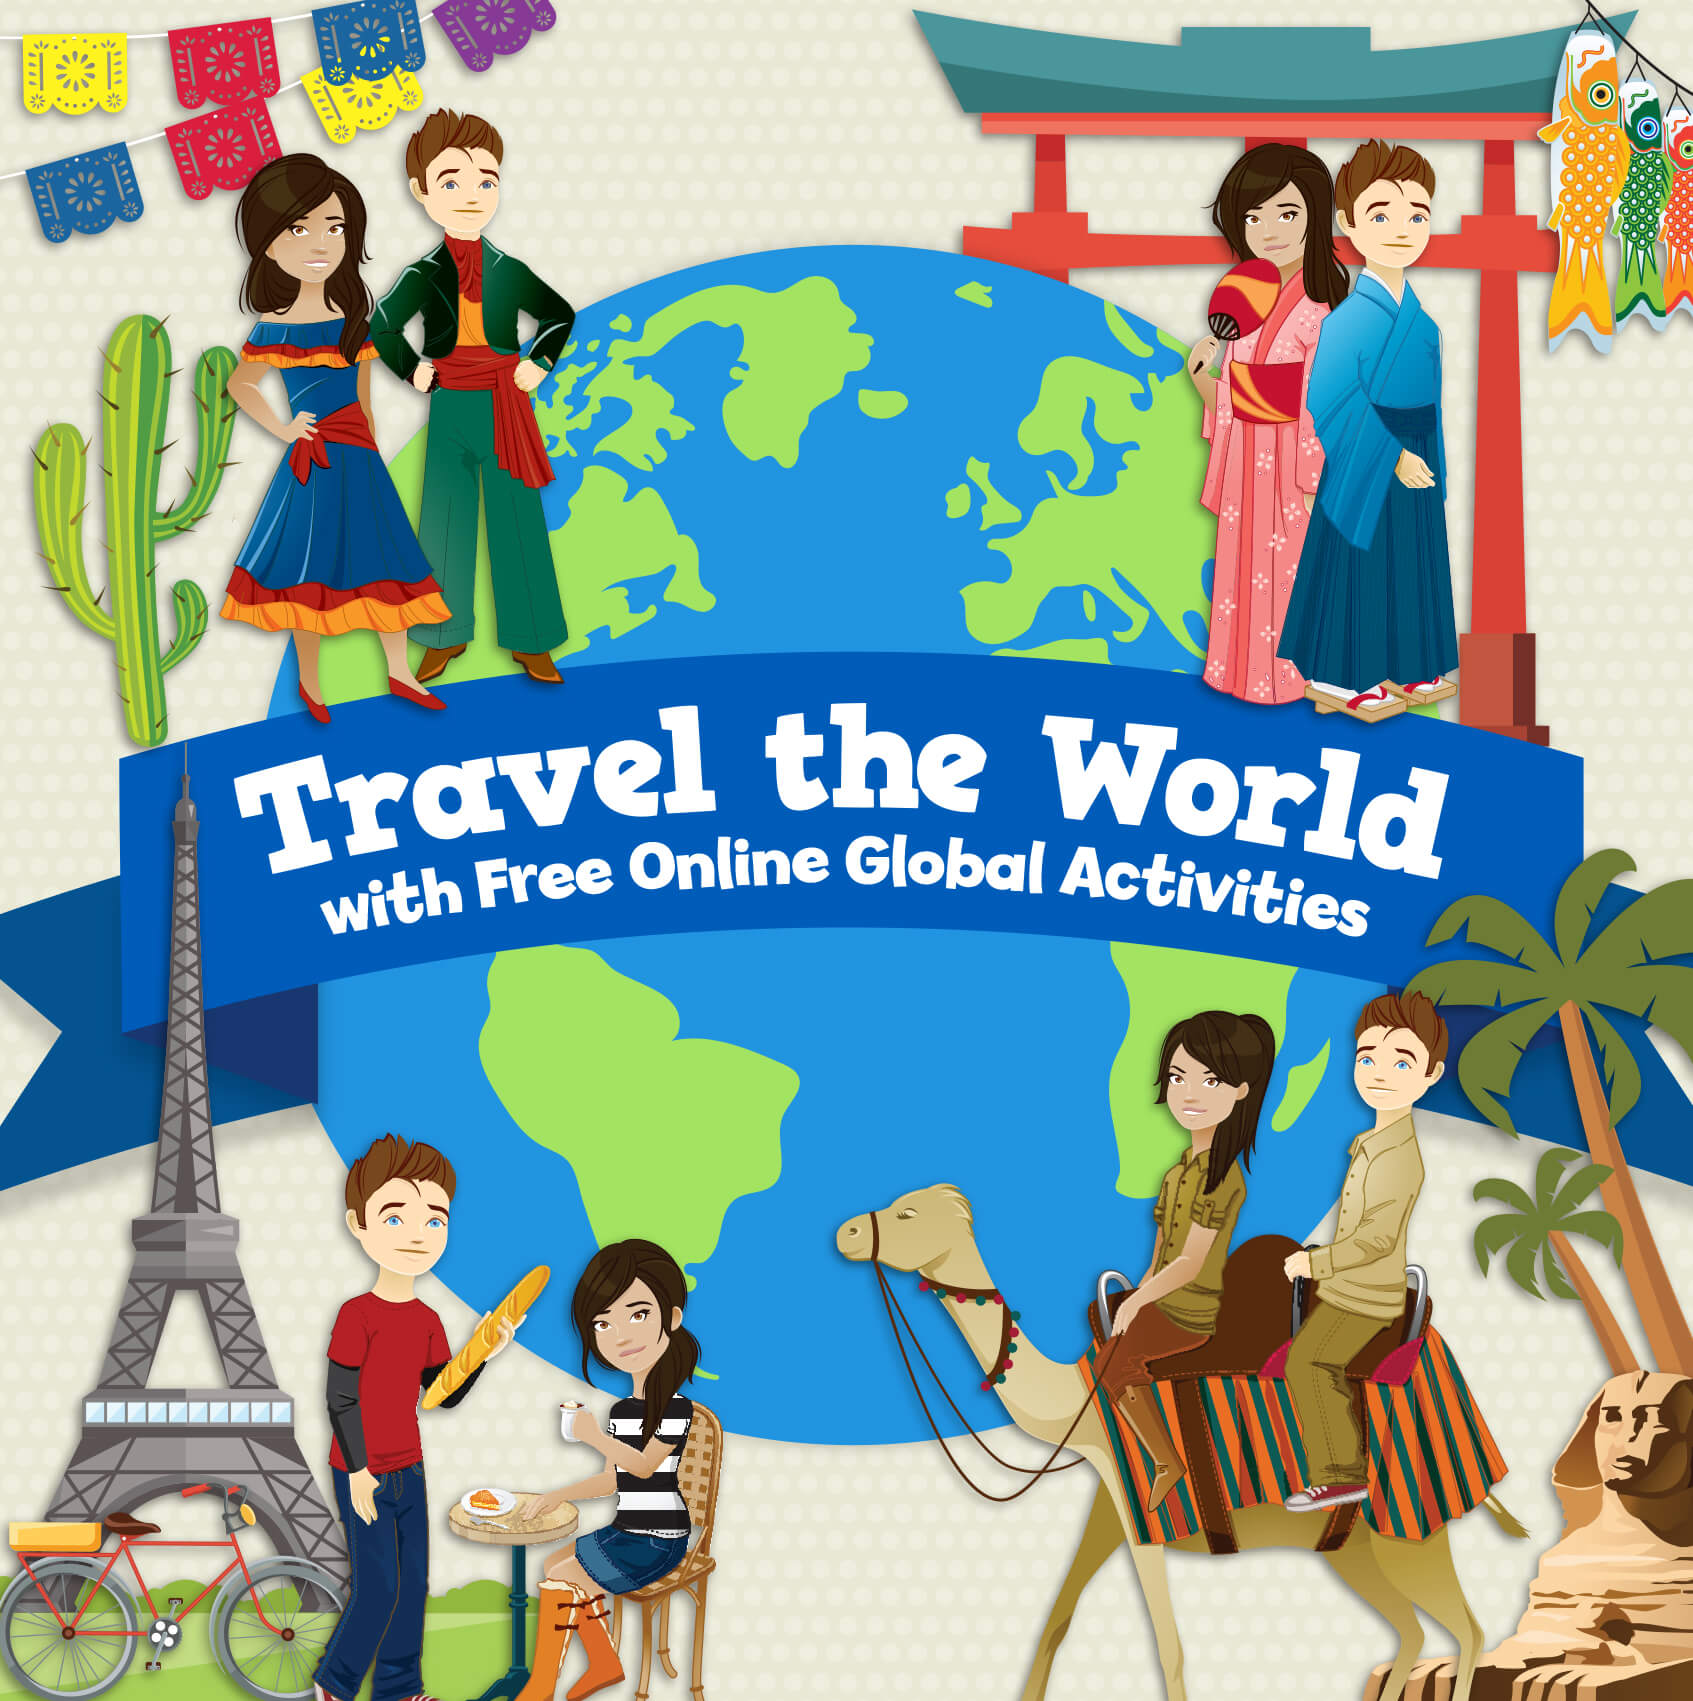 Travel the World with FREE online global activities